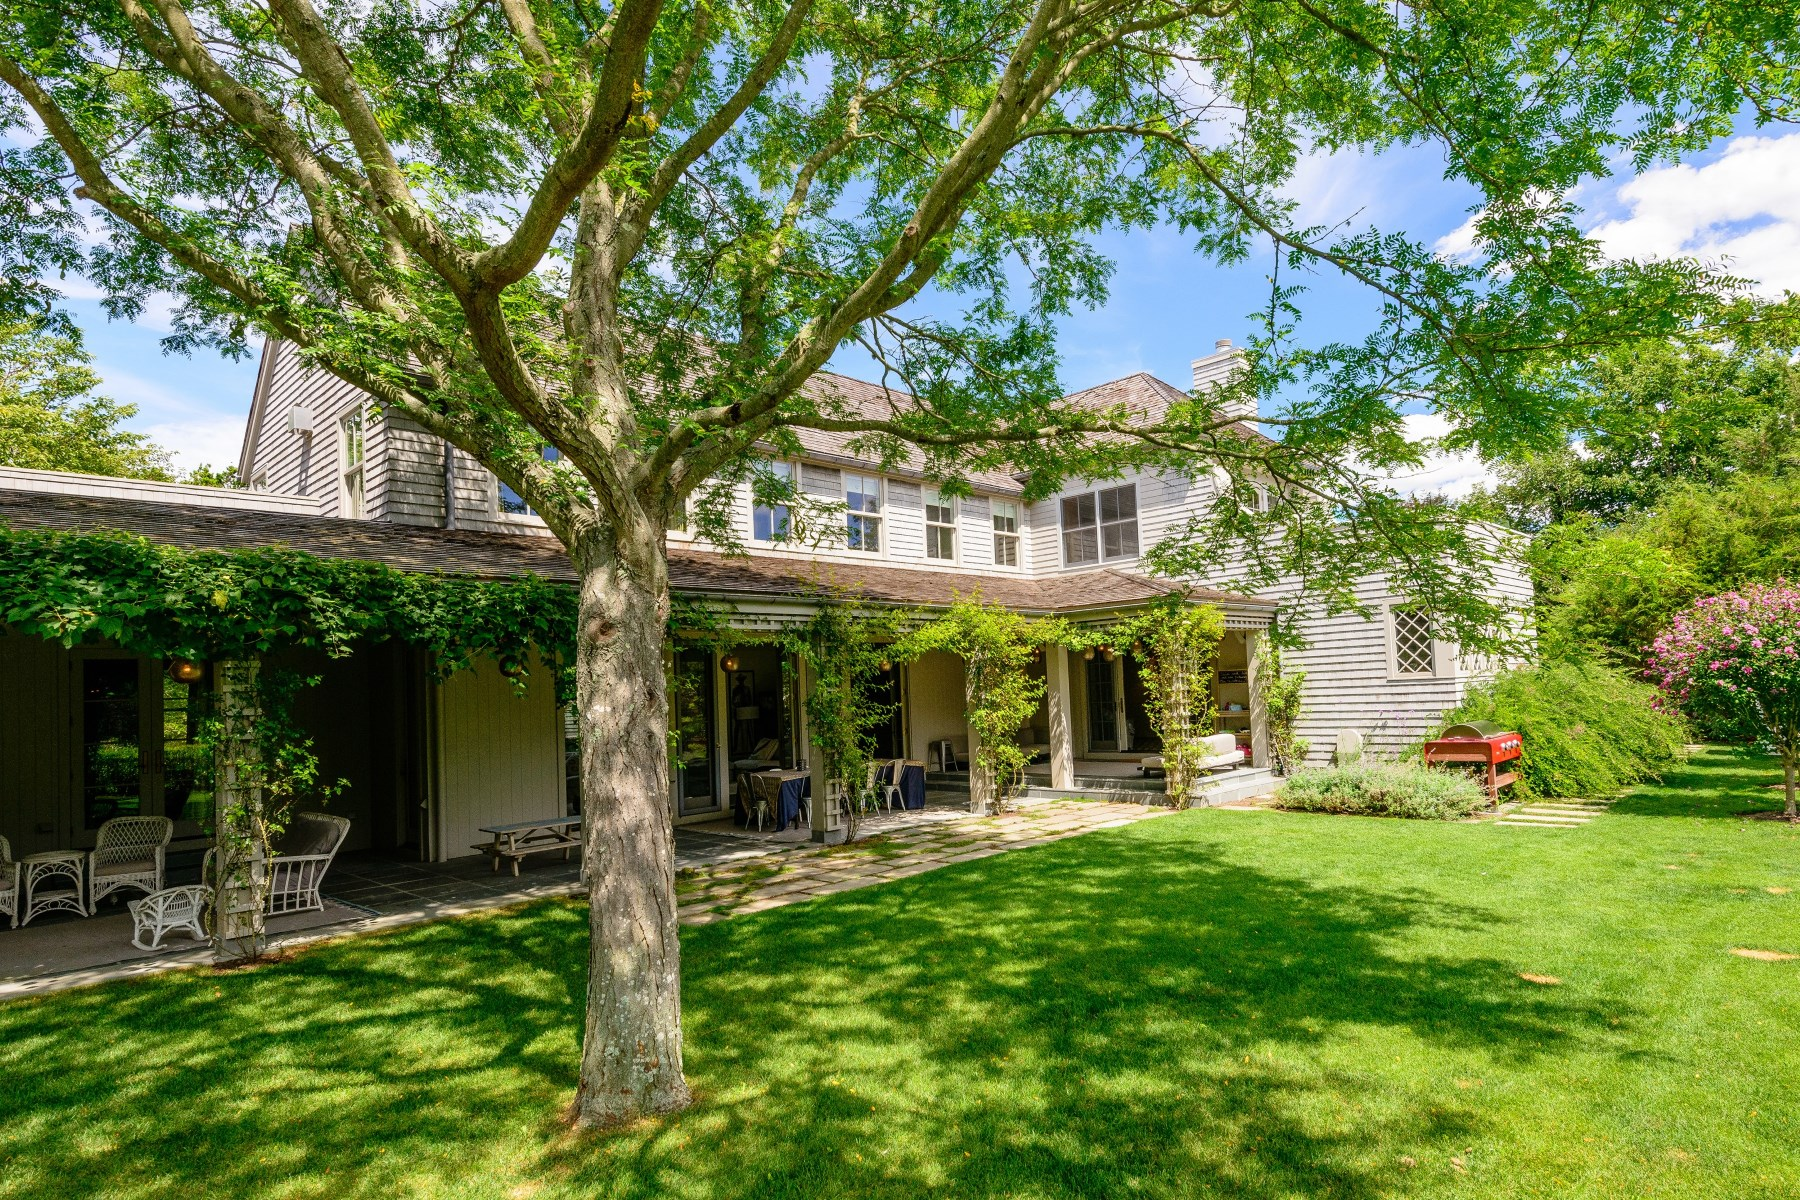 Single Family Home for Rent at Private Oasis, Coveted Georgica Road East Hampton, New York 11937 United States